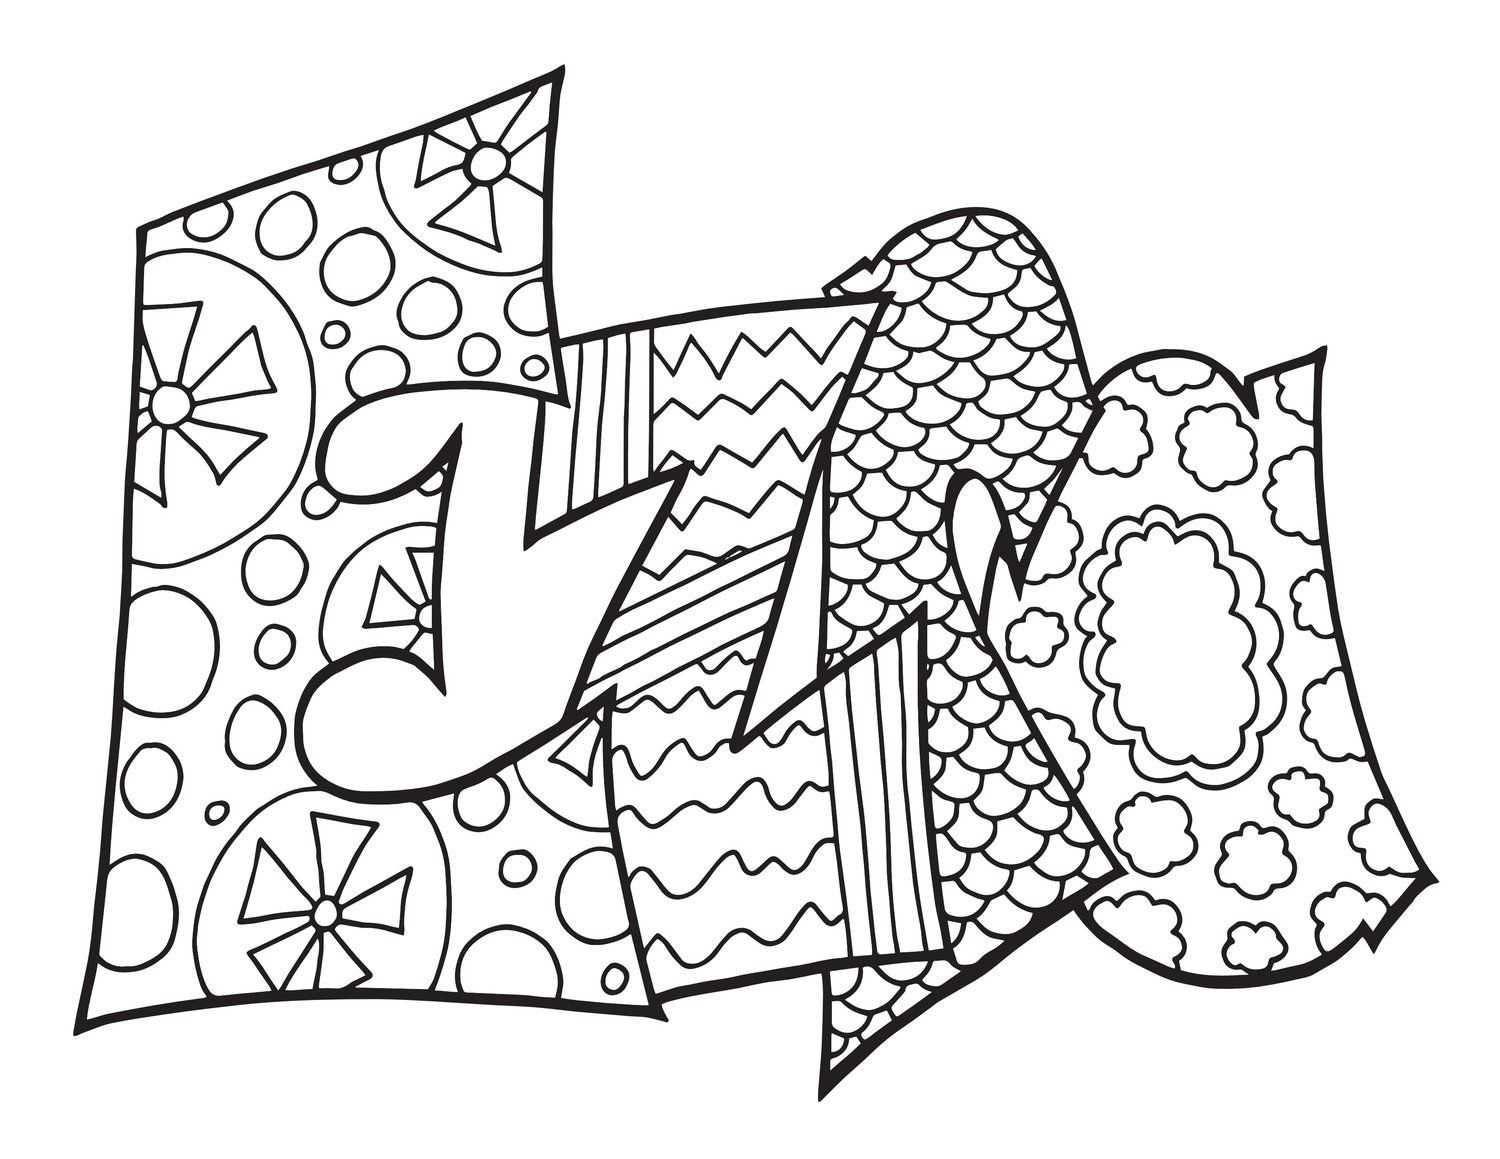 CLICK HERE TO DOWNLOAD YOUR FREE EZRA COLORING PAGE Any name or word turned  into a printable coloring pag… | Coloring pages, Coloring books, Free coloring  pages